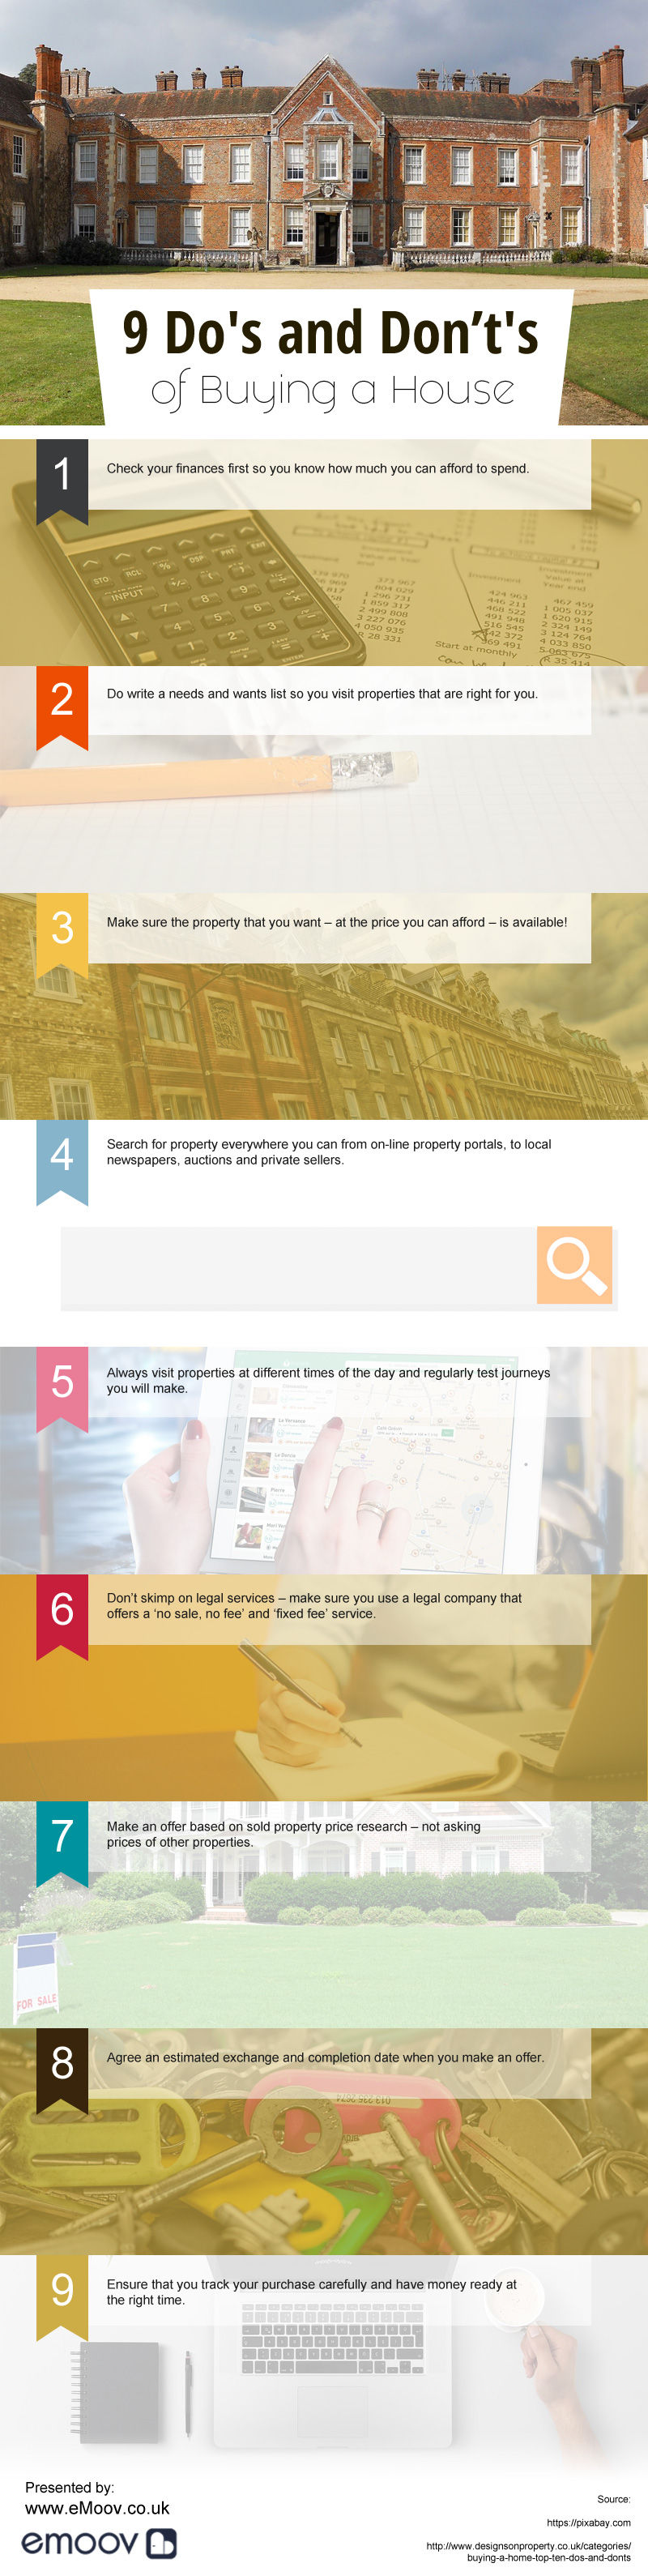 9 Do's and Don't's of Buying a House [infographic]